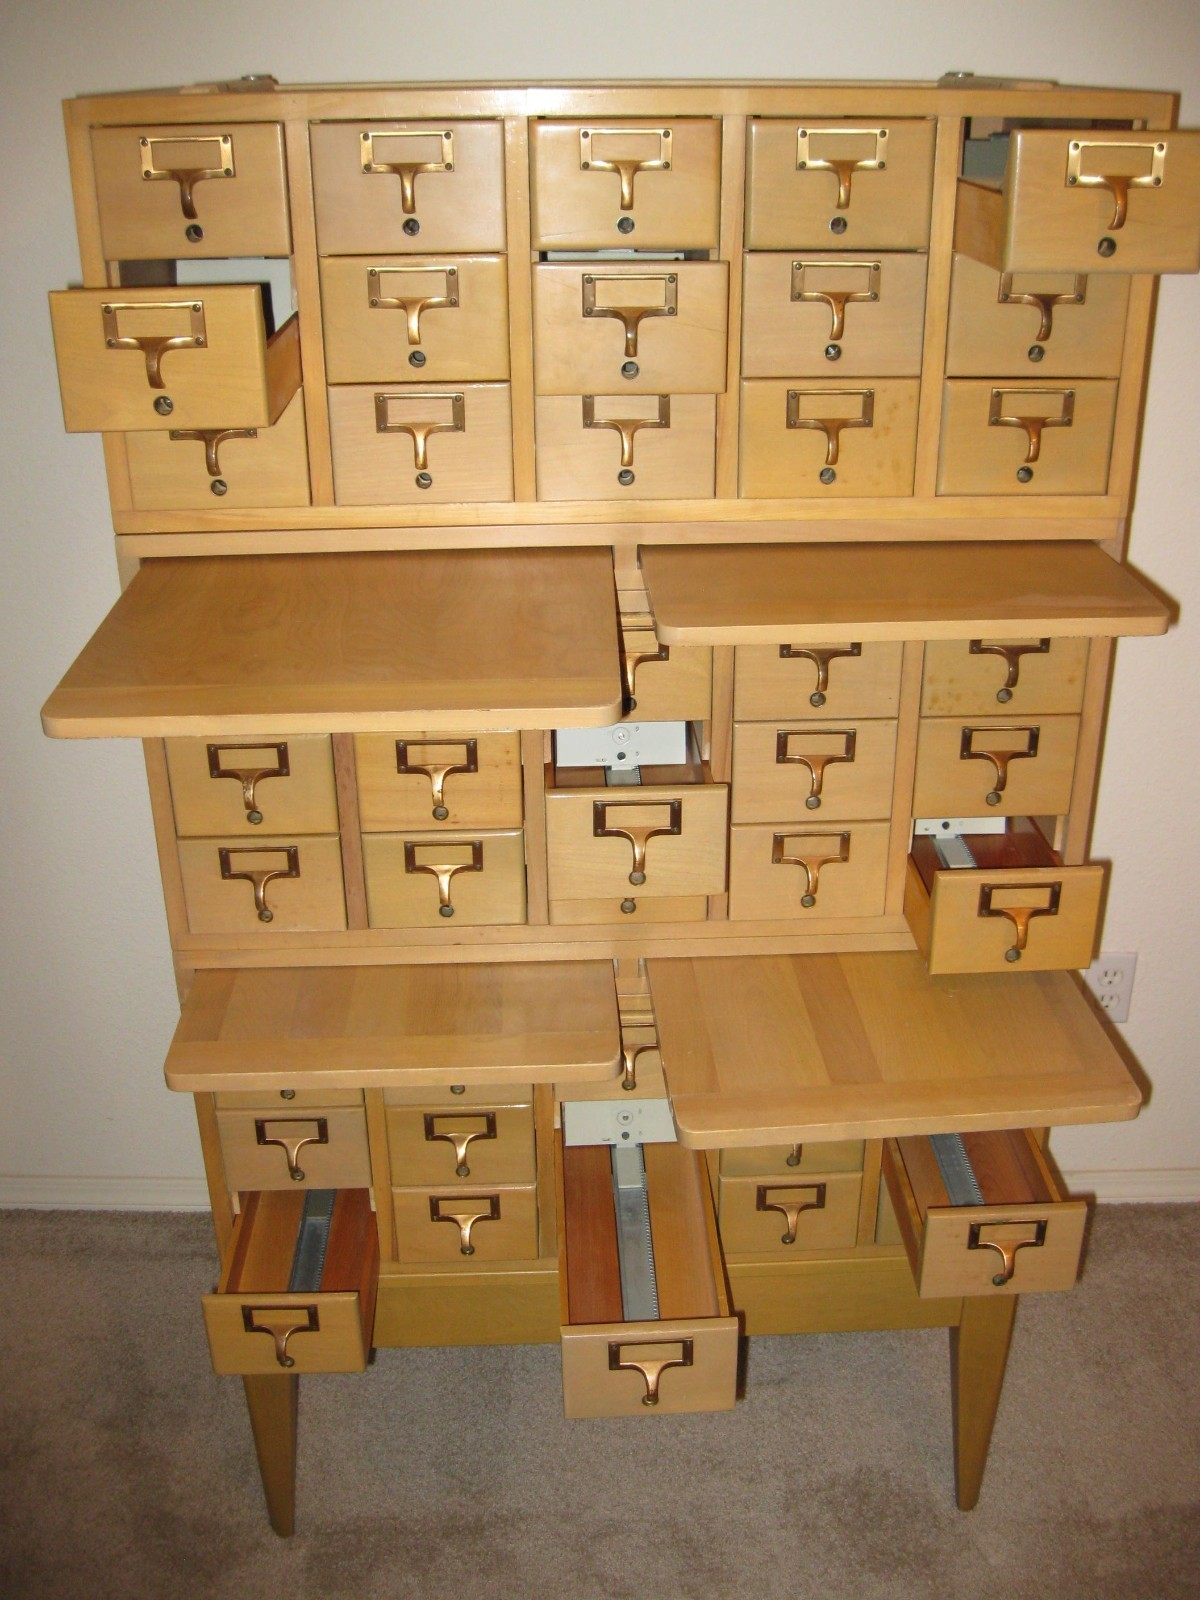 PRICE GUIDE VINTAGE FURNITURE Vintage Library Card Catalog Bureau